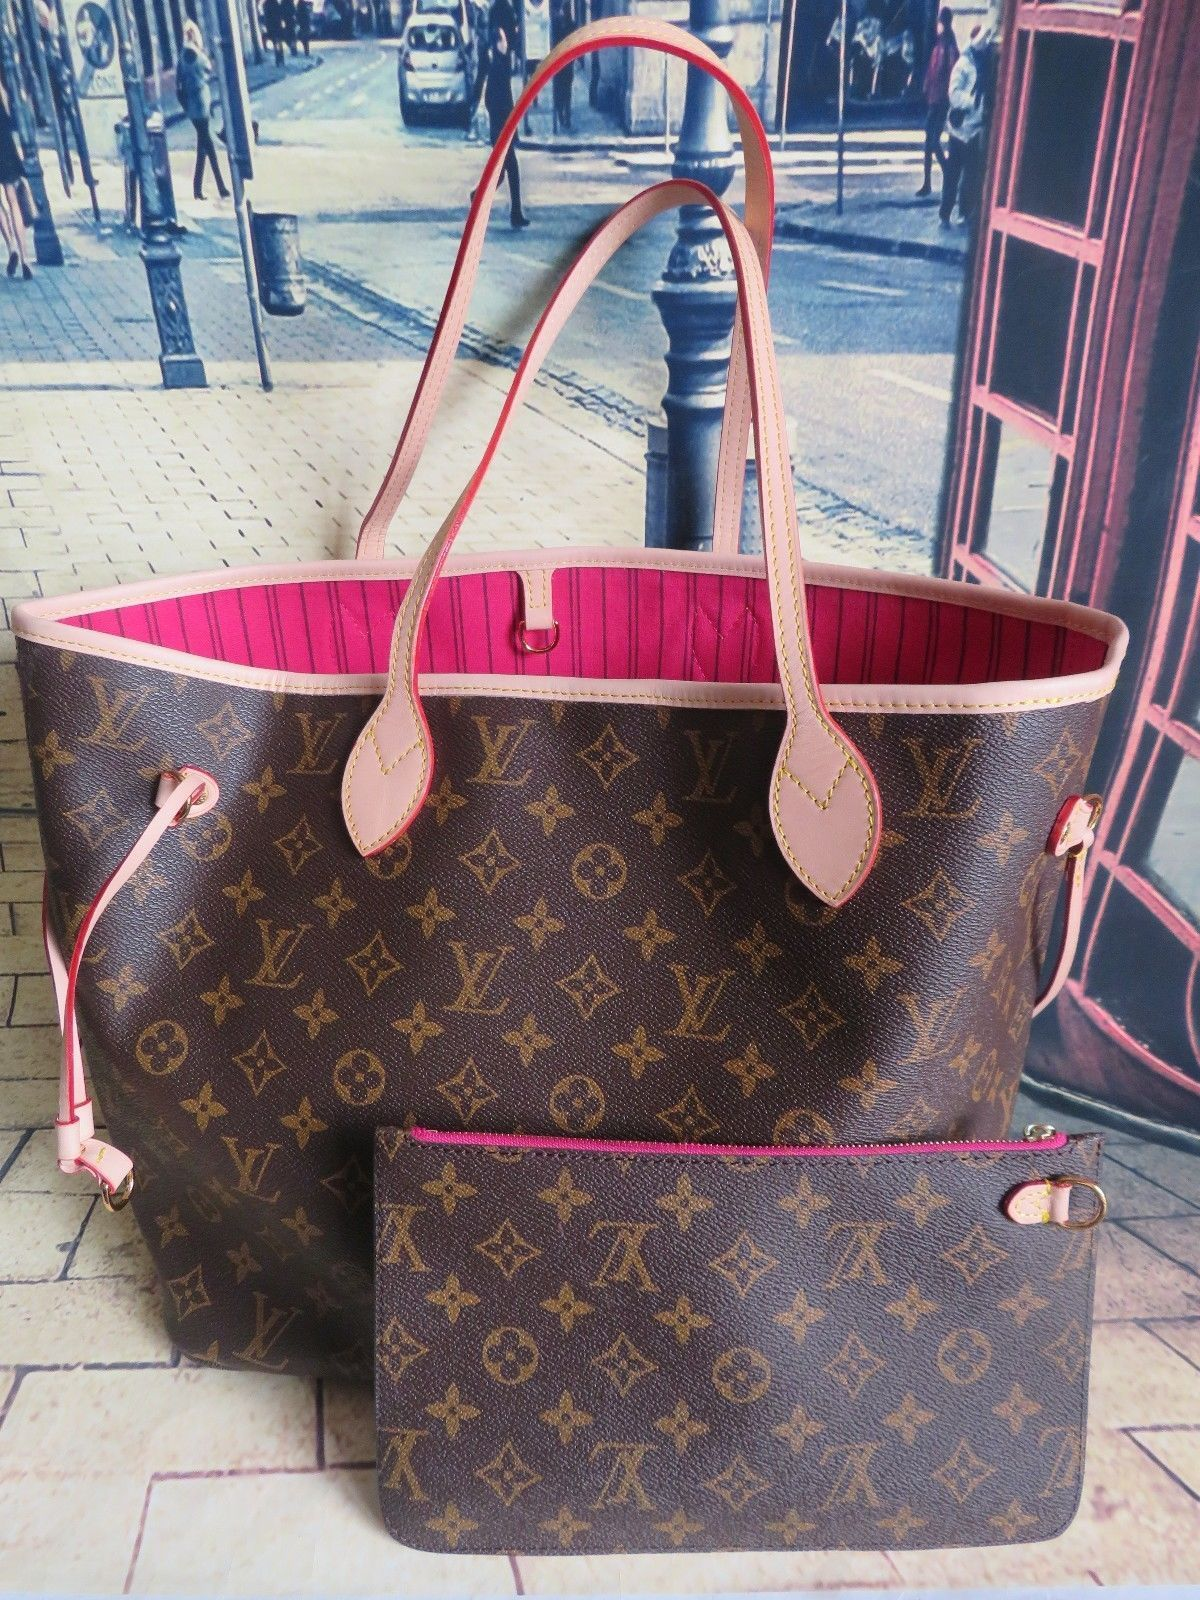 0bf99416d385d Louis-Vuitton-Neverfull-MM-Damier-Ebene-Tote-Handbag-Clutch-Pochette -Dust-Bag